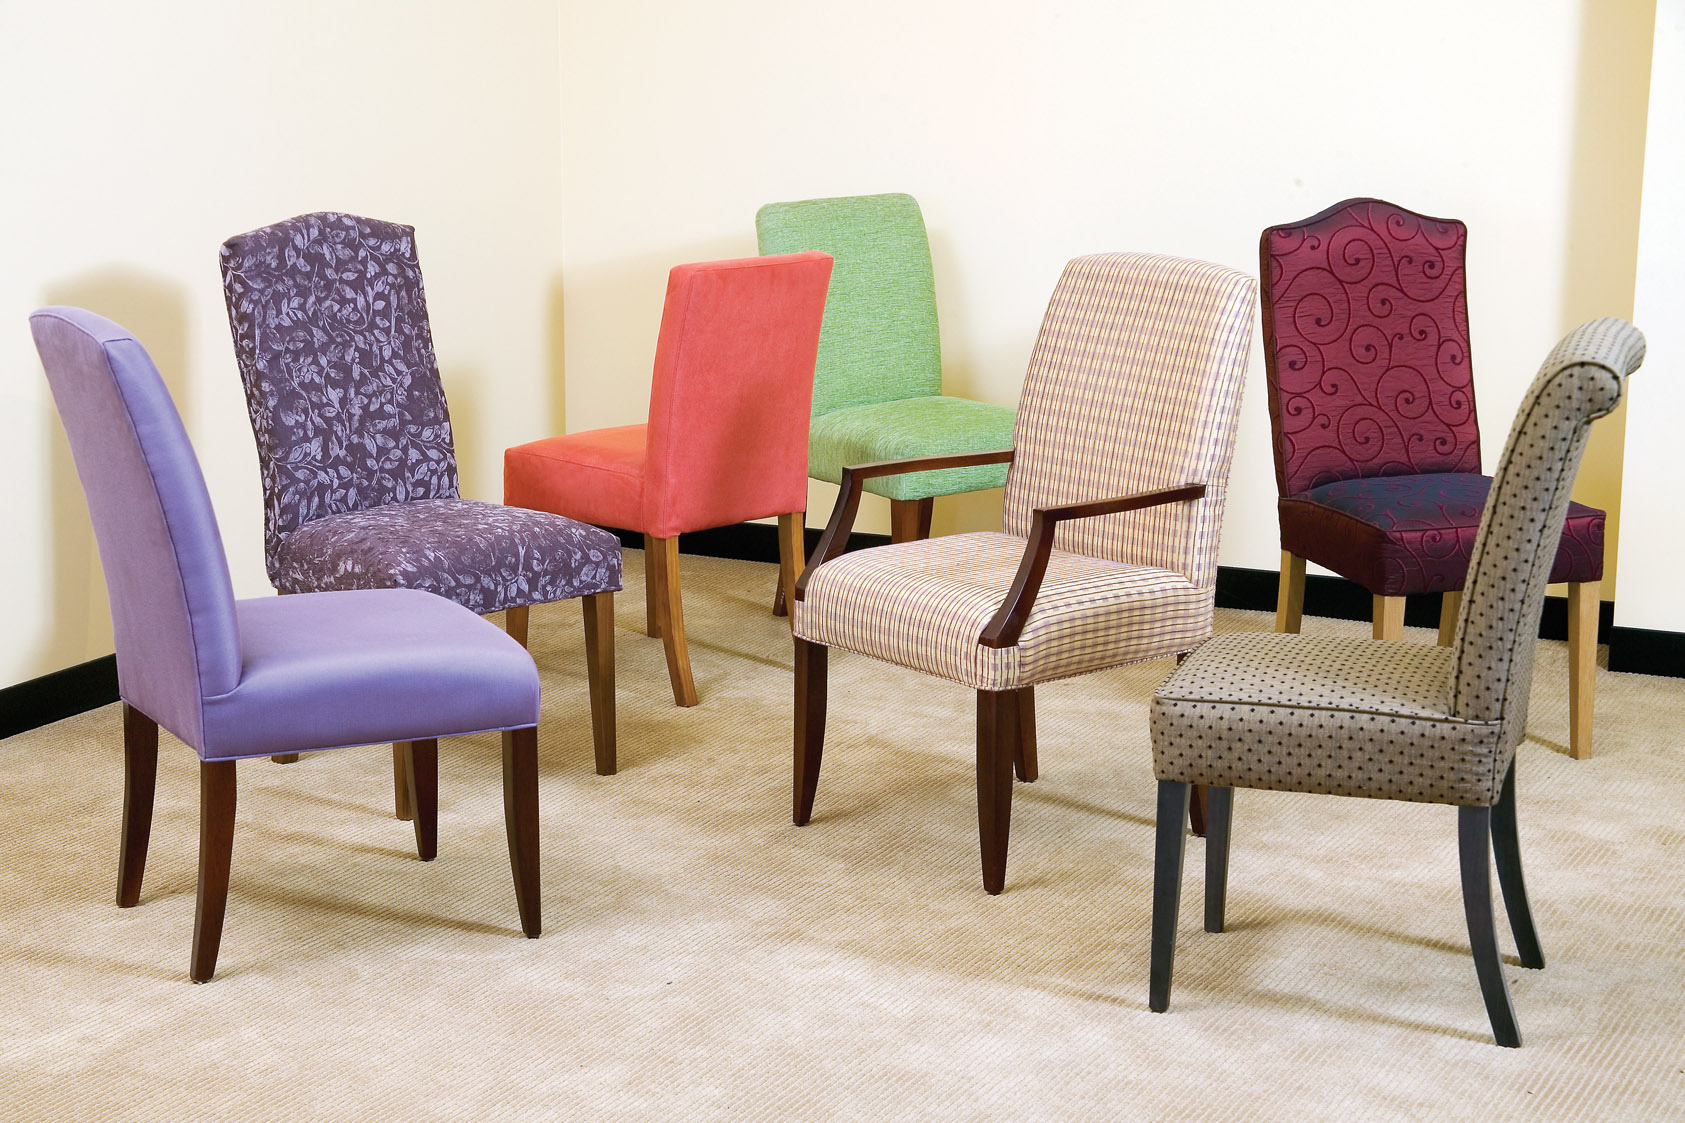 Armchairs perth gumtree for motivate